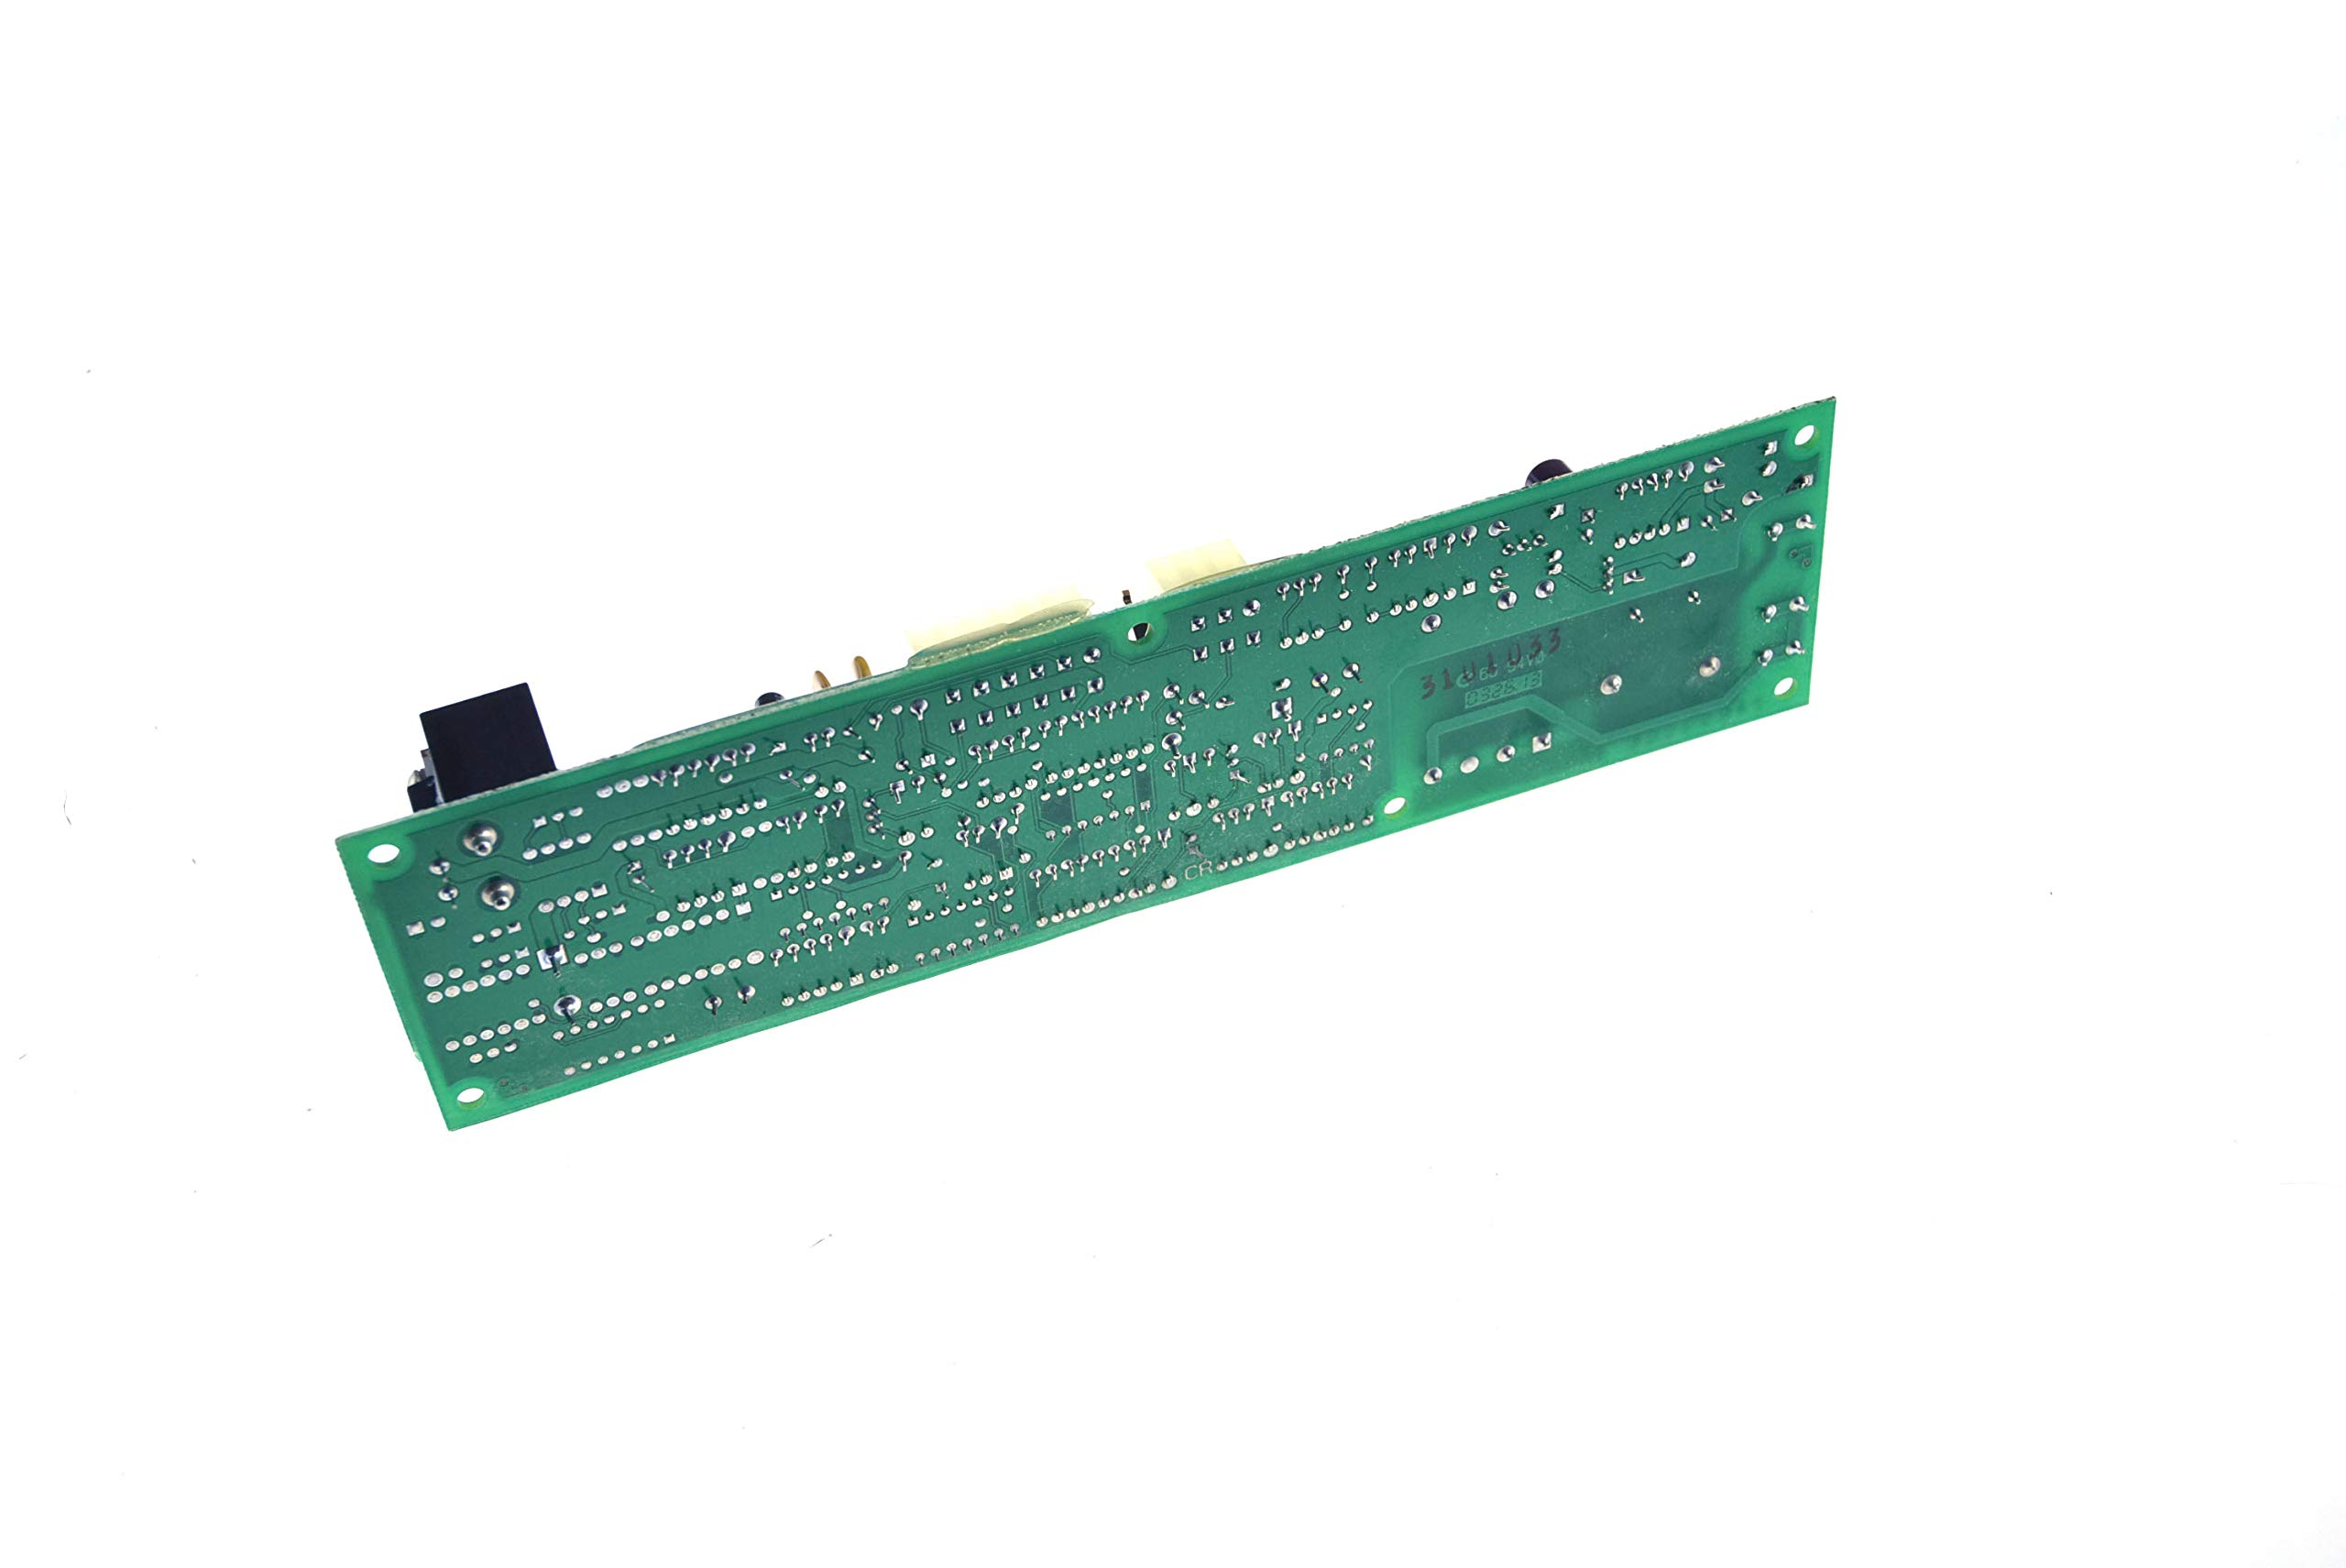 Lincoln Control Circuit Board (125A) L15733-1 For Lincoln welders by Lincoln welders (Image #3)